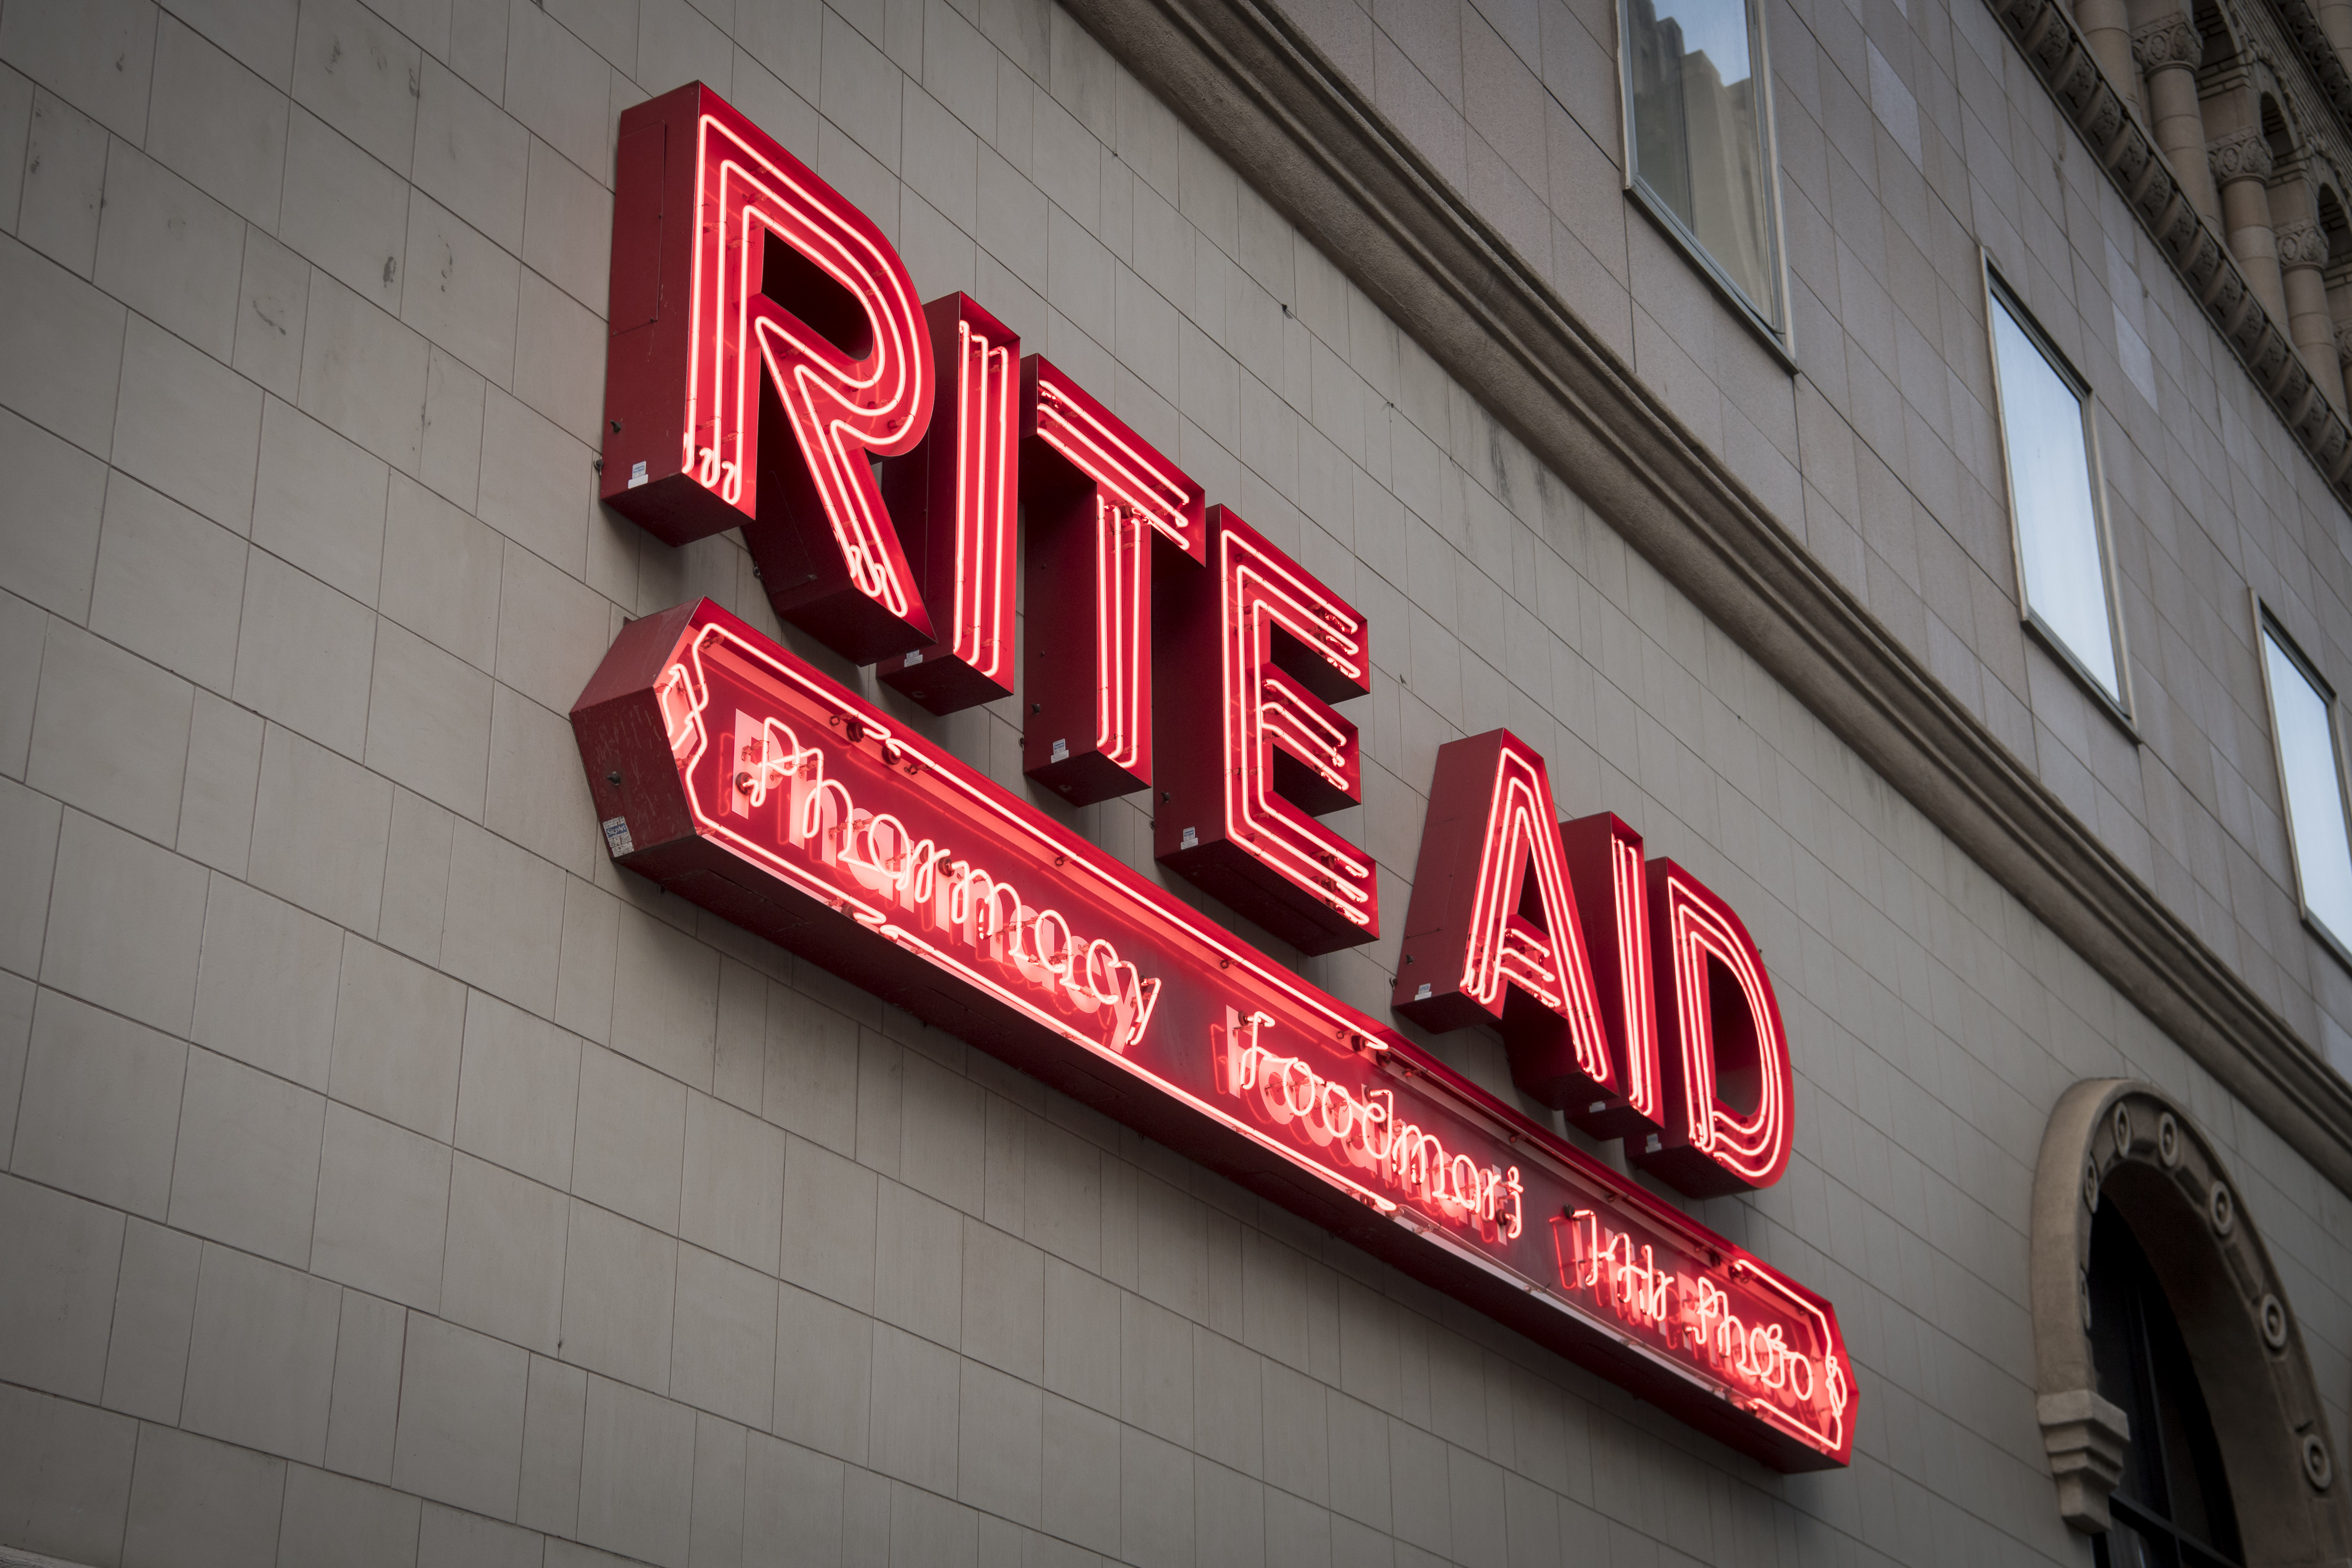 A red neon sign for the drug store Rite Aid